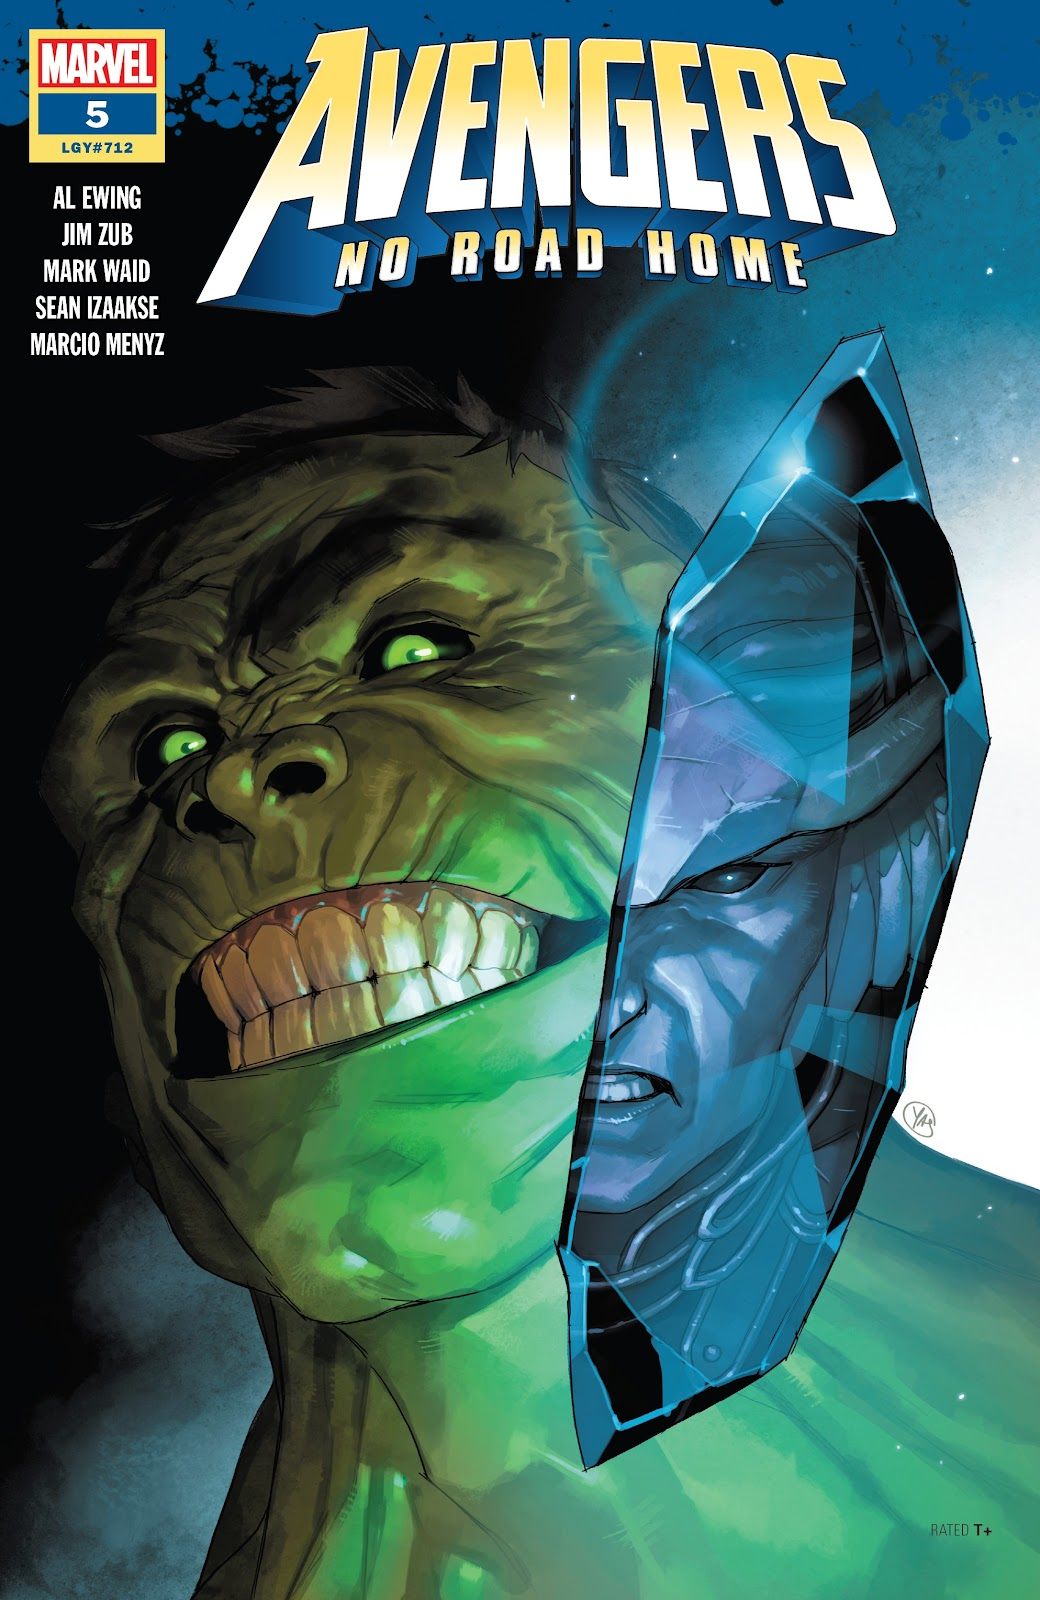 Read online Avengers No Road Home comic -  Issue #5 - 1